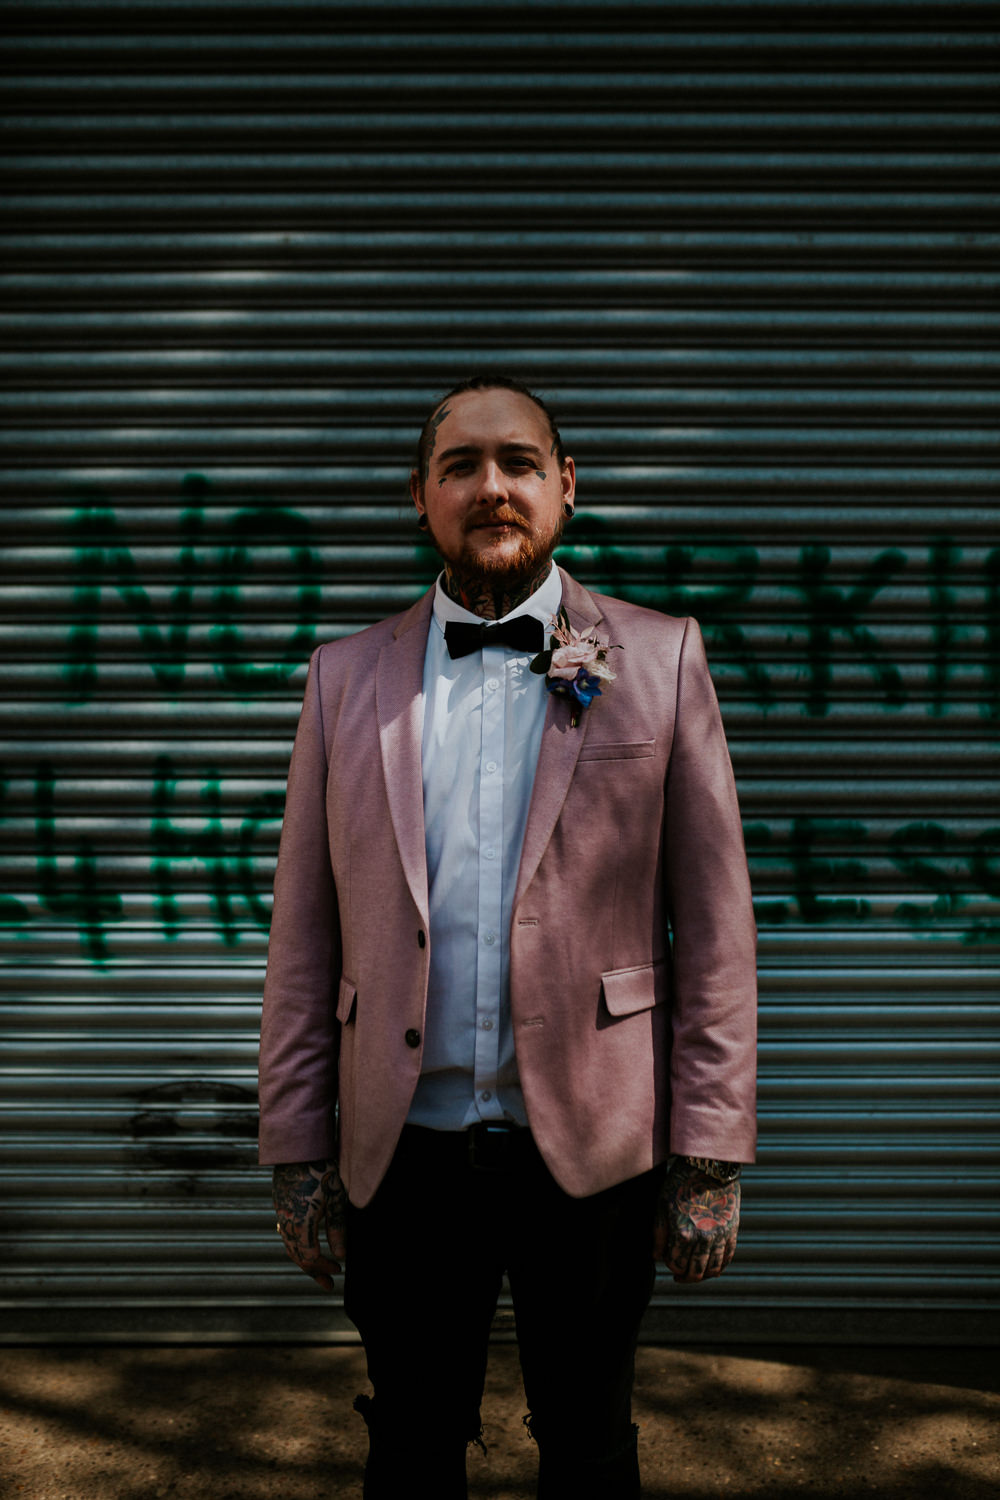 Groom Suit Pink Blazer Jacket Bow Tie Neon Sign Wedding Ideas State Of Love and Trust Photography